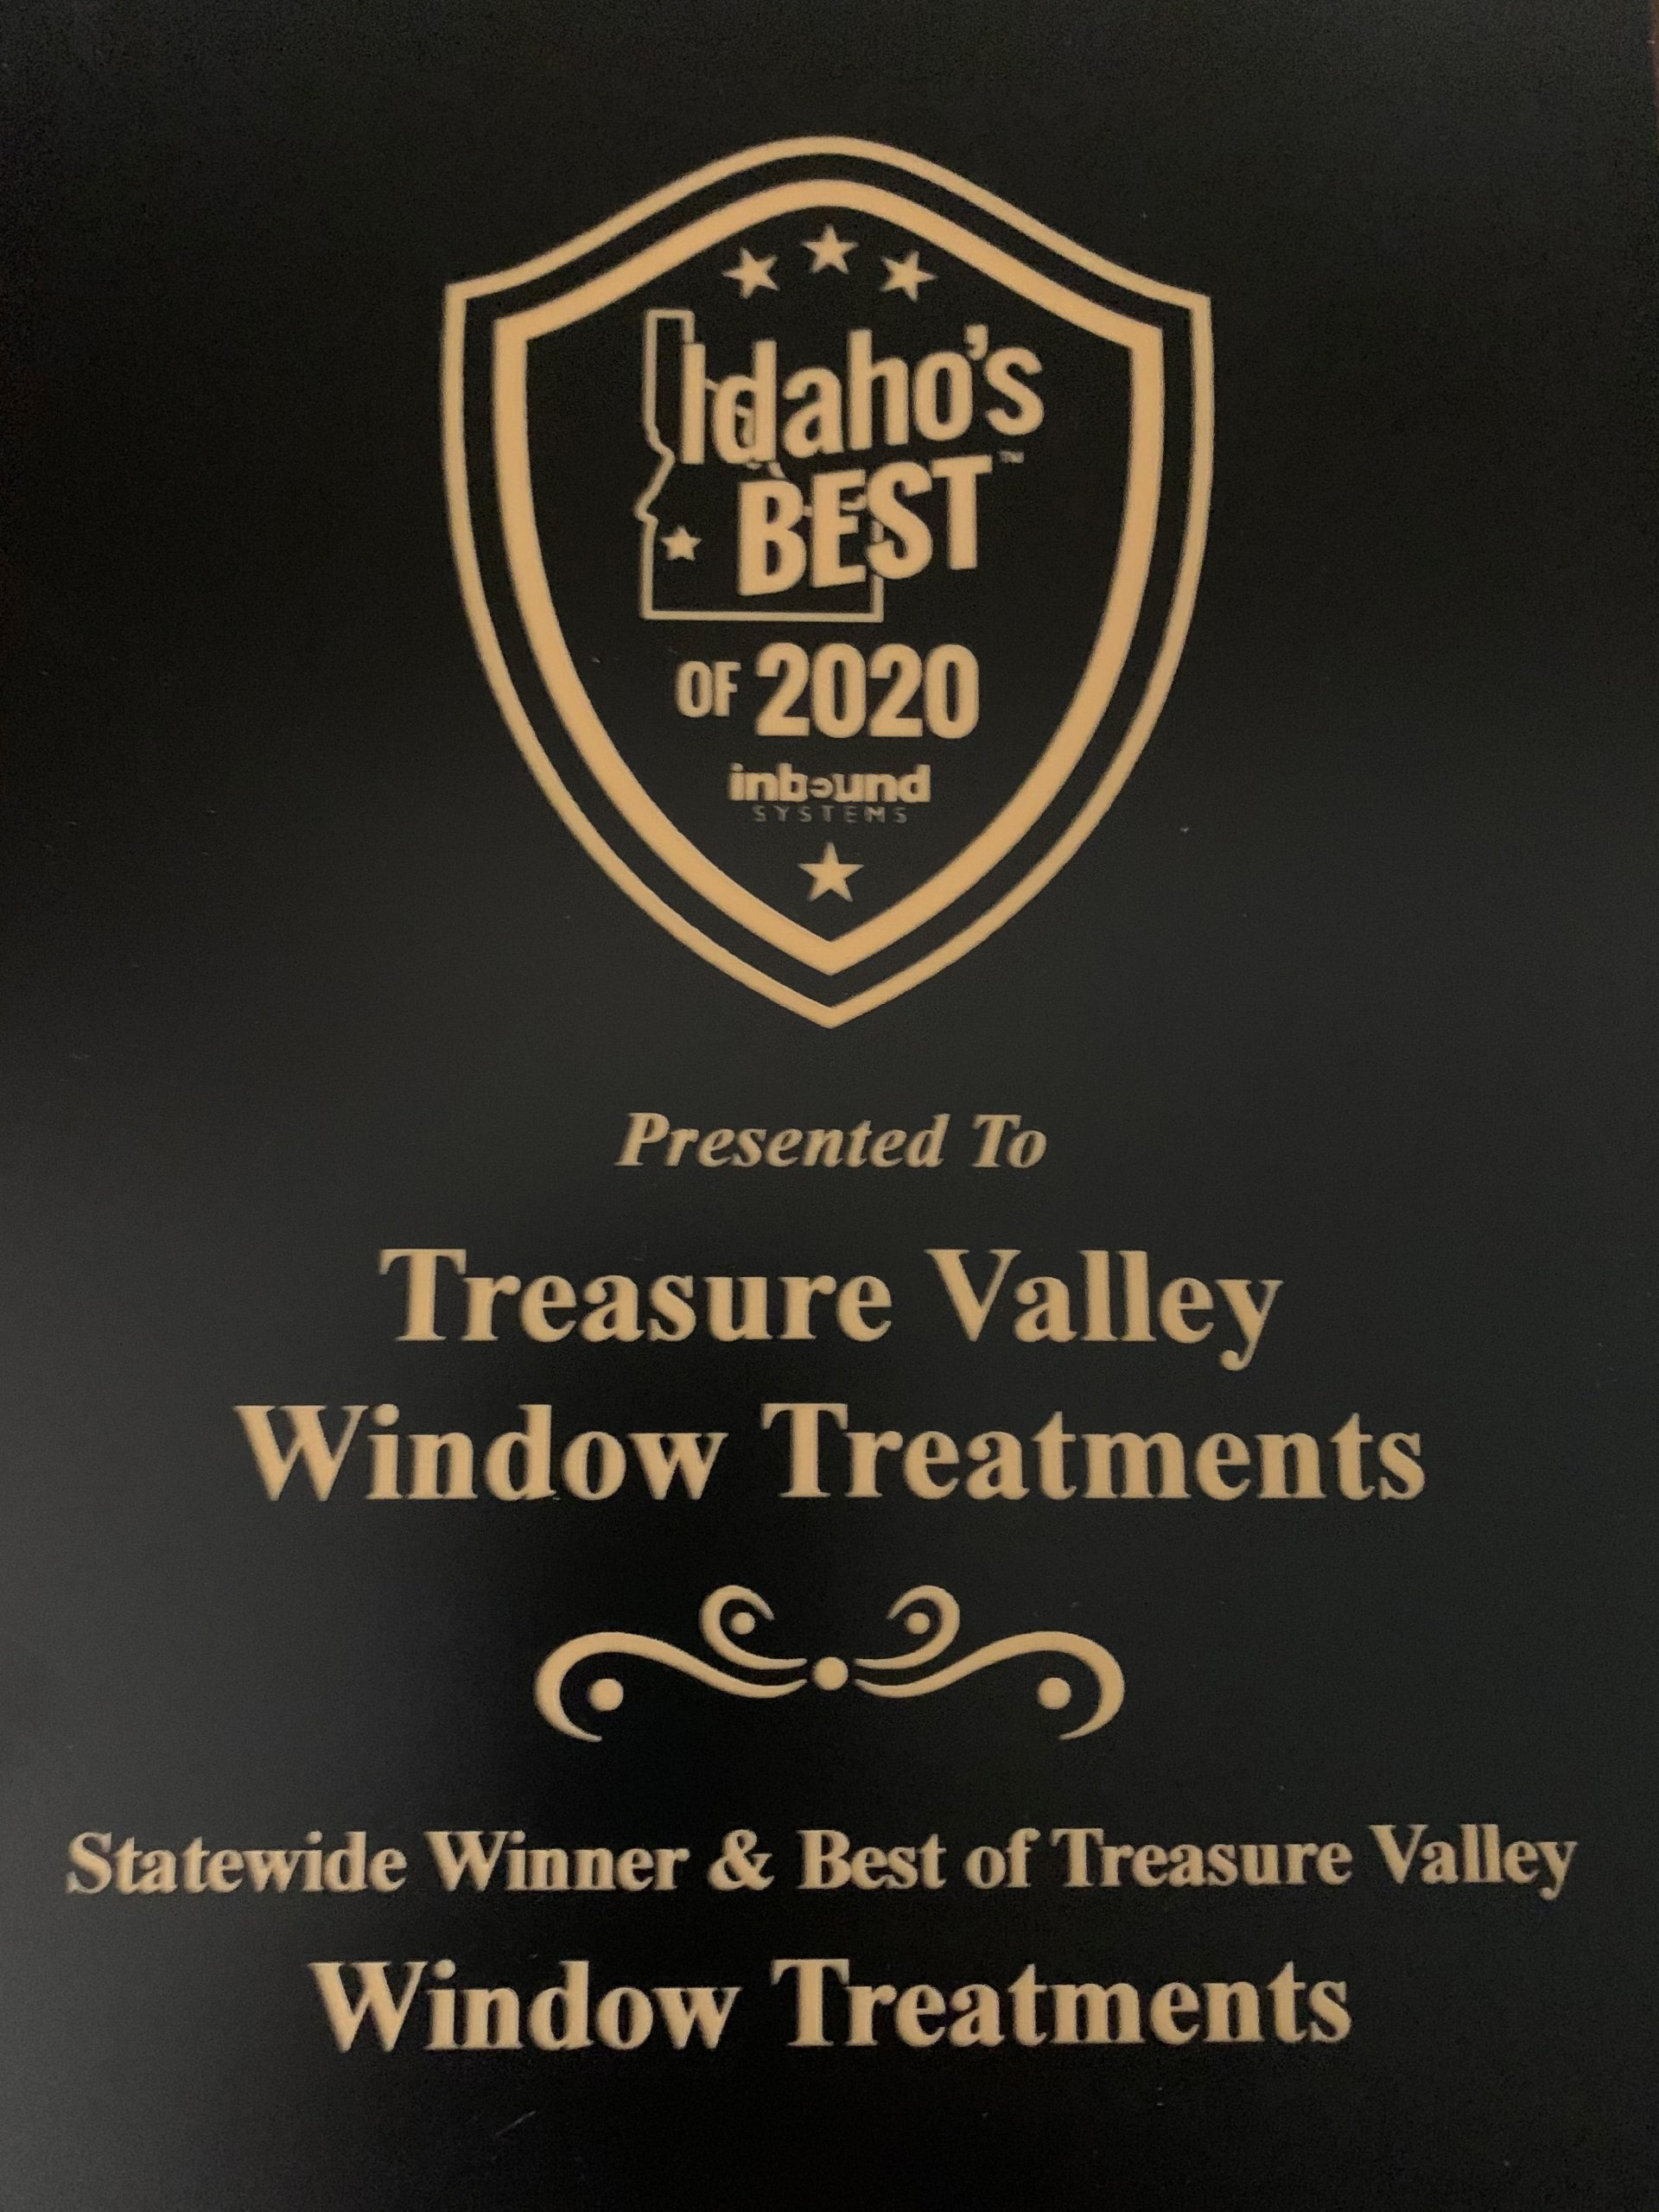 Treasure Valley Window Treatments Best 2020